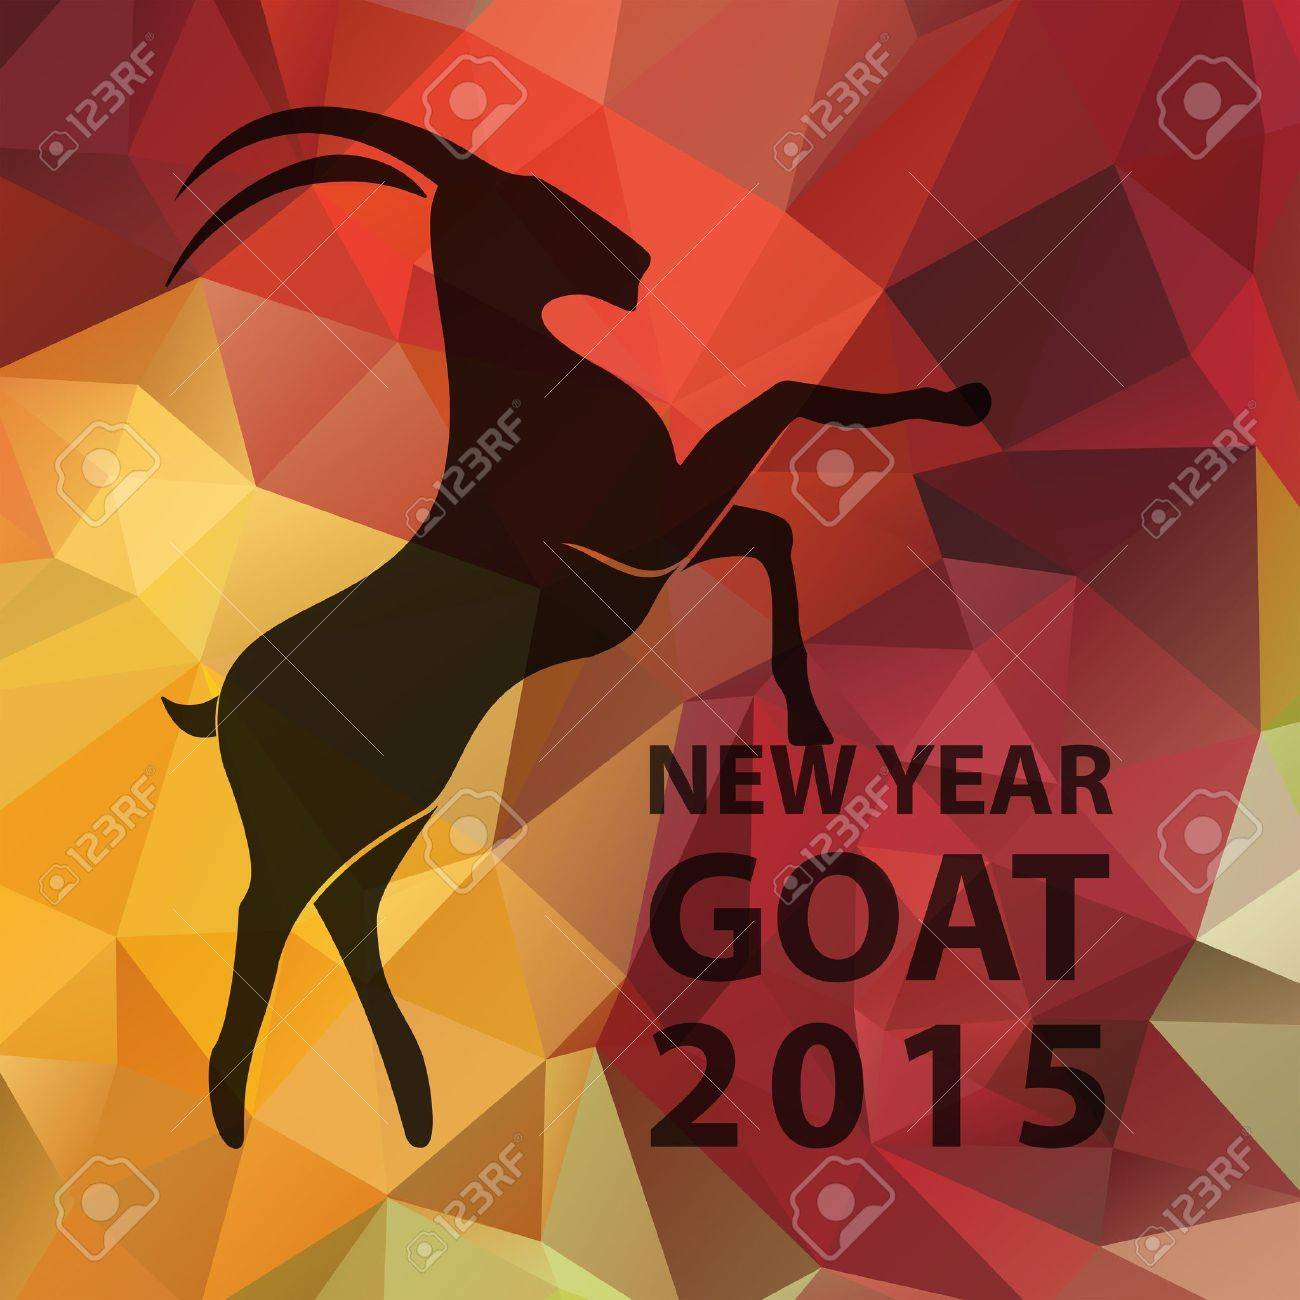 Chinese New Year 2015, goat silhouette on golden red geometric pattern. Vector illustration EPS10 - 34078910